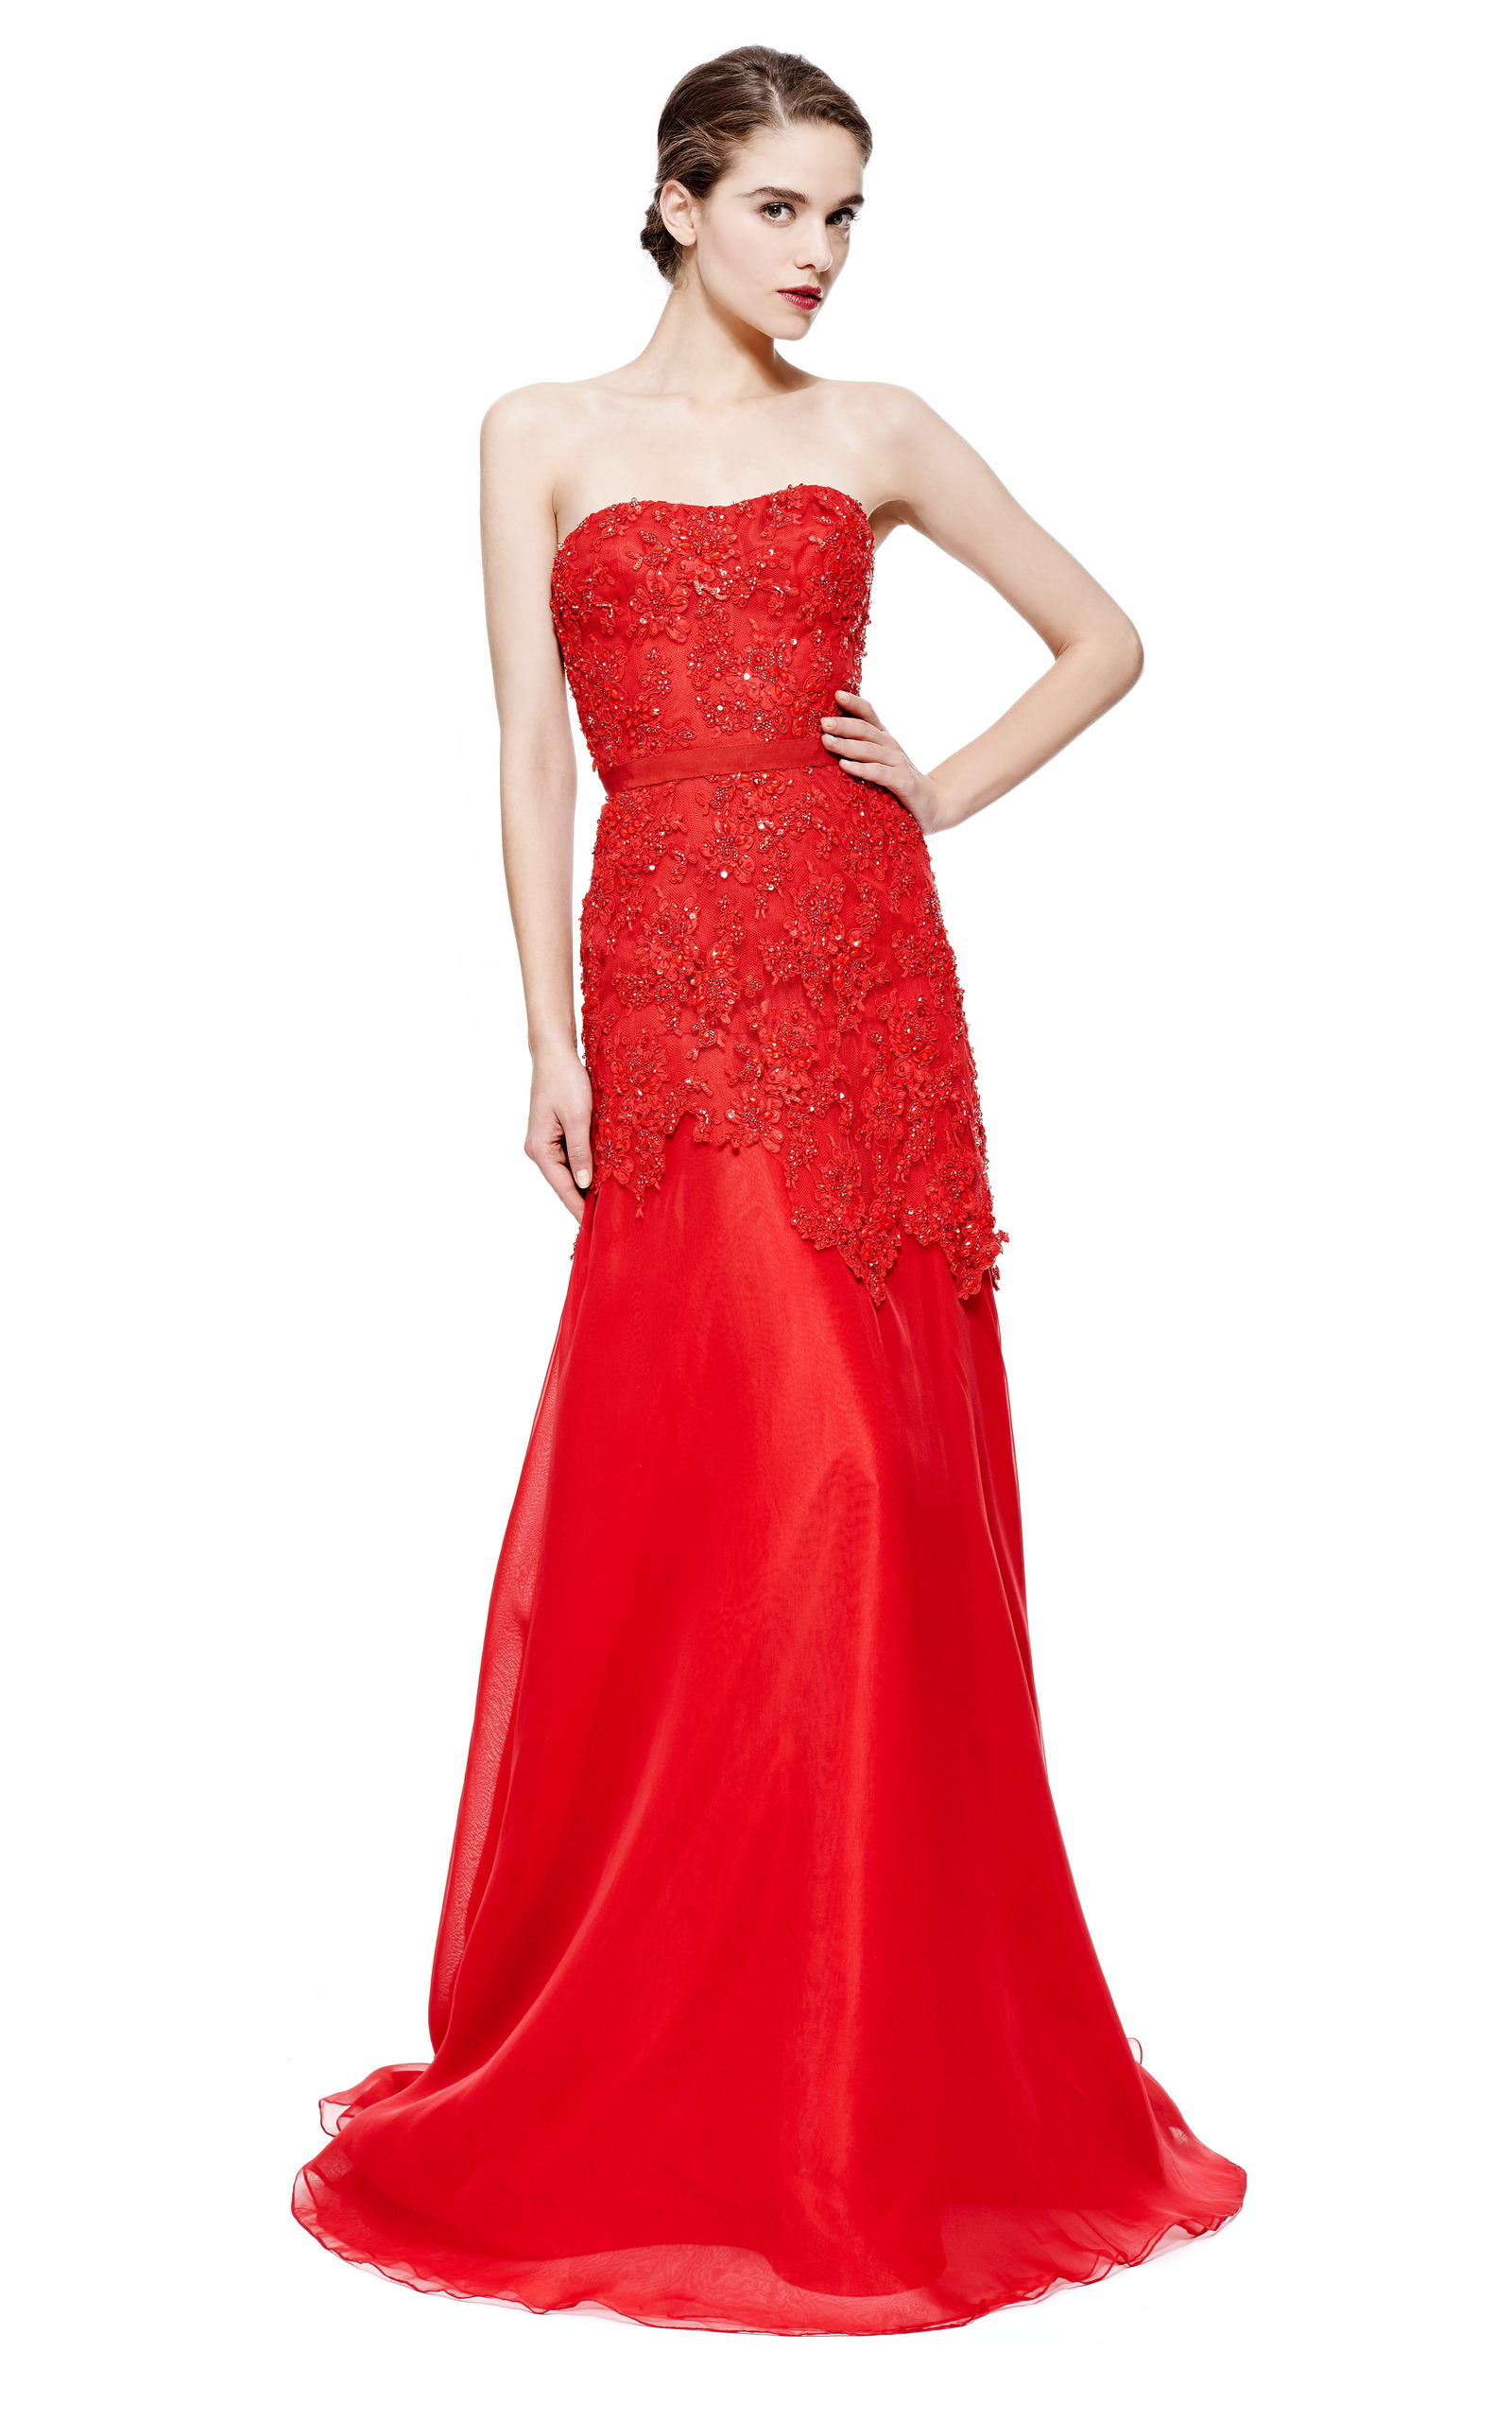 fe99912215809 Reem AcraReem Acra Strapless Beaded Re-Embroidered Lace Gown. CLOSE. Loading